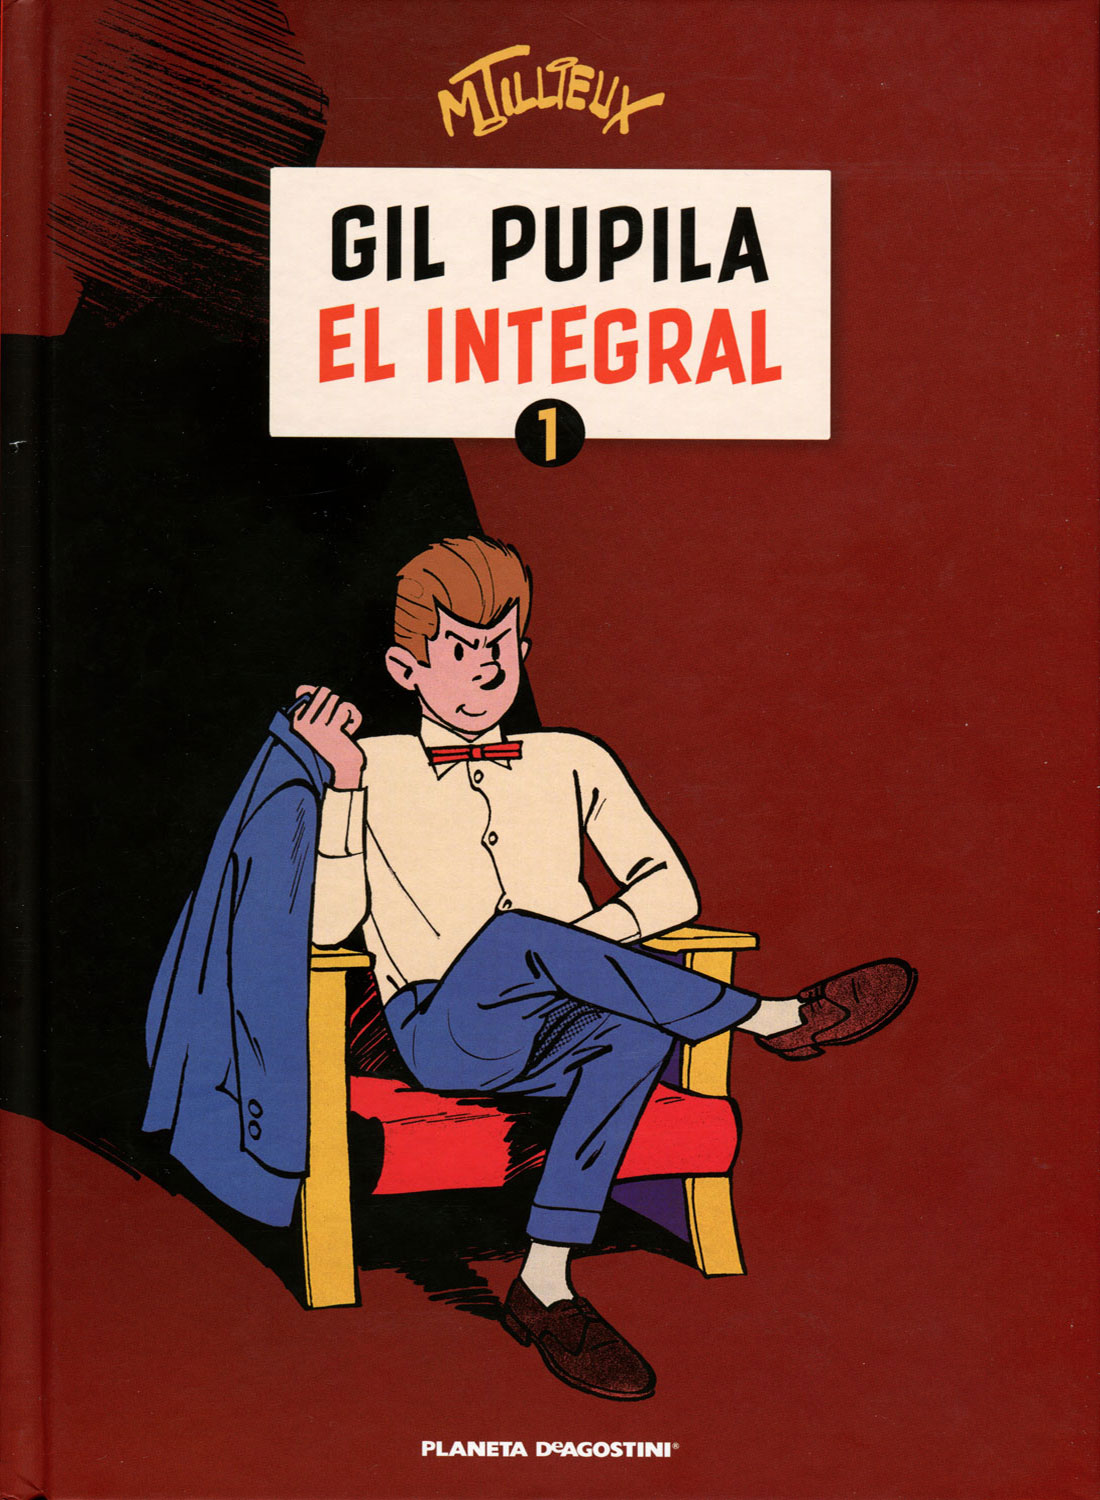 Gil Pupila, el integral